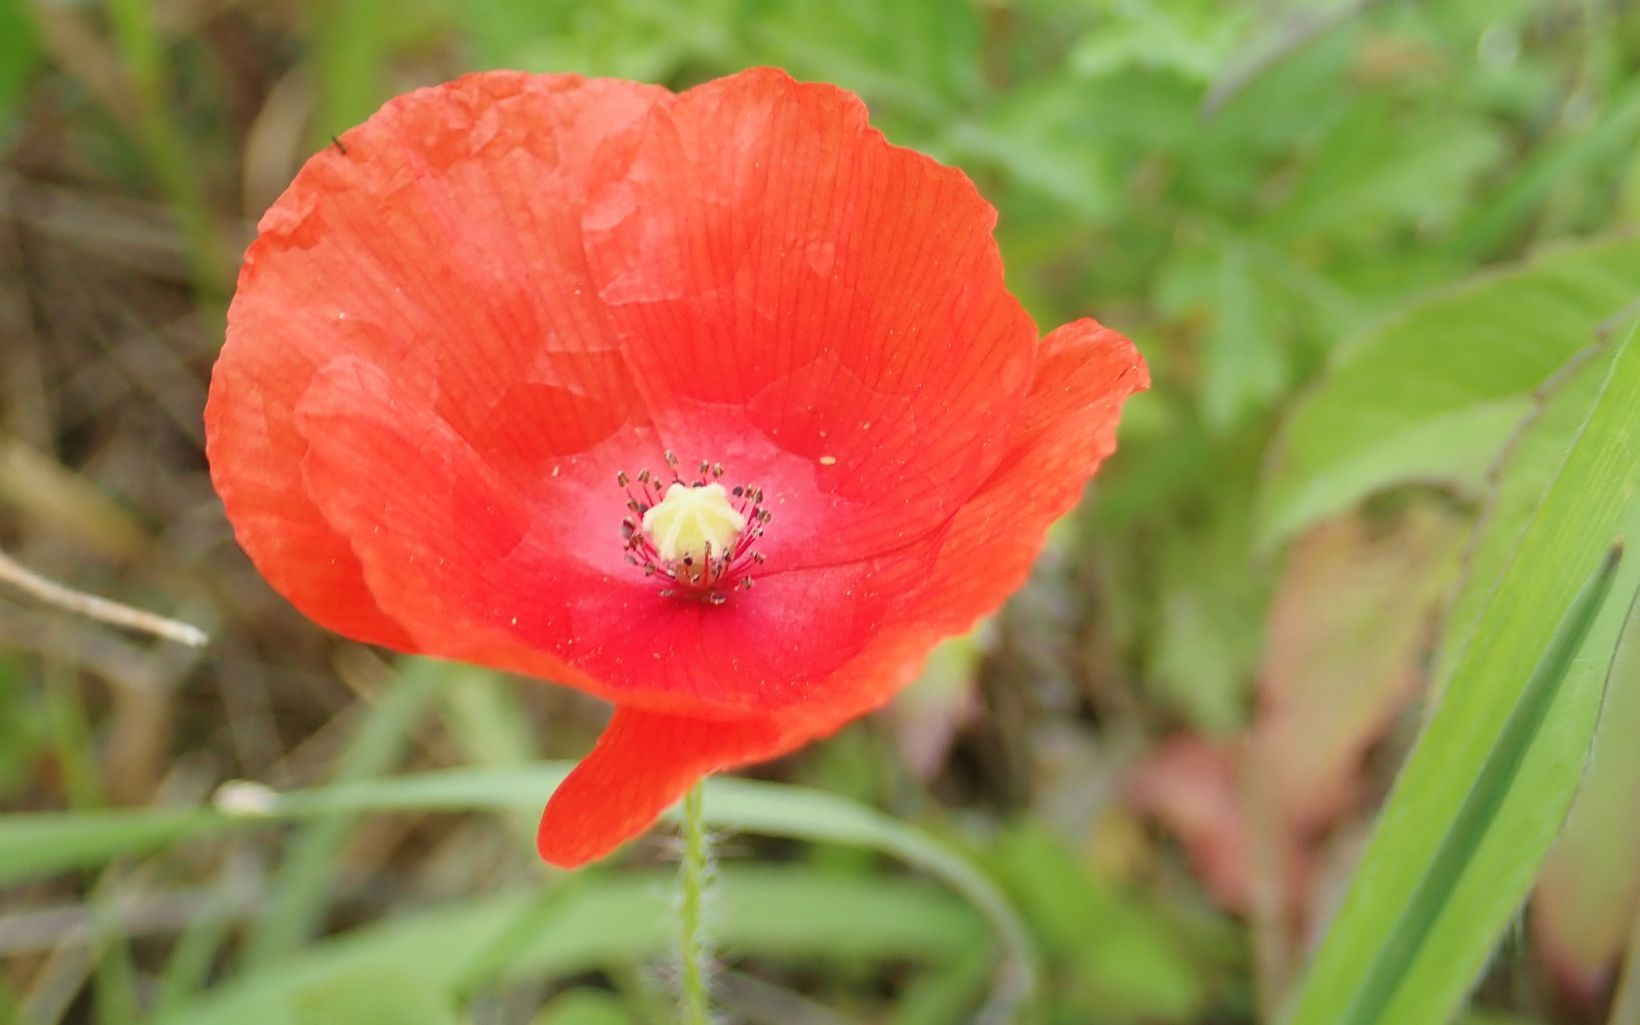 Closeup of a bright red poppy flower.